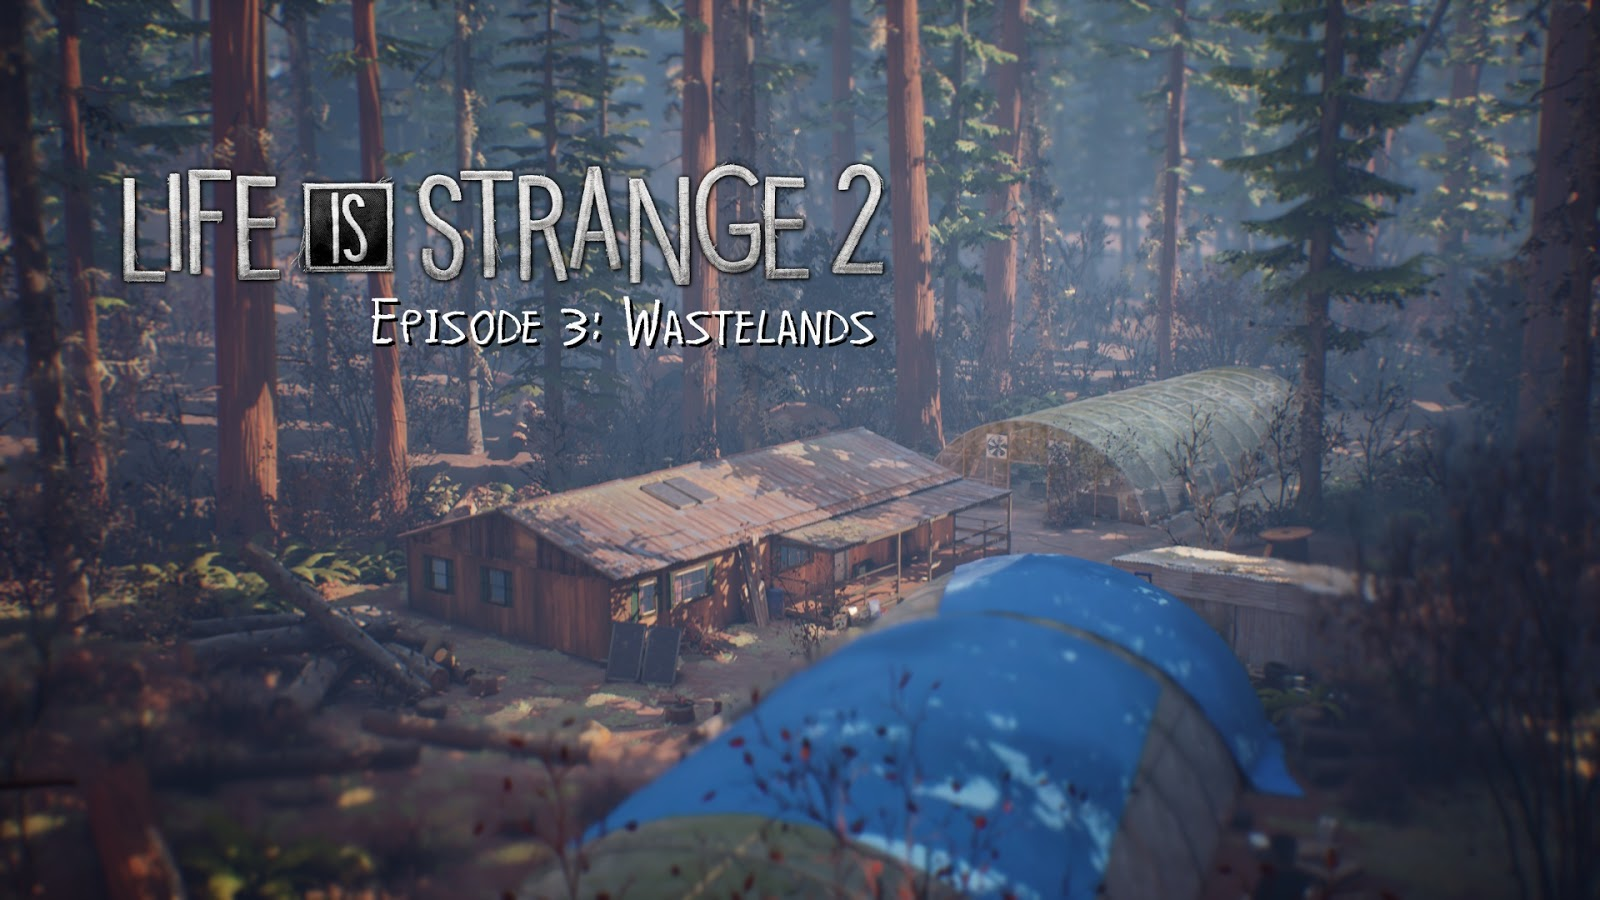 Life Is Strange 2 - Episode 3: Wastelands